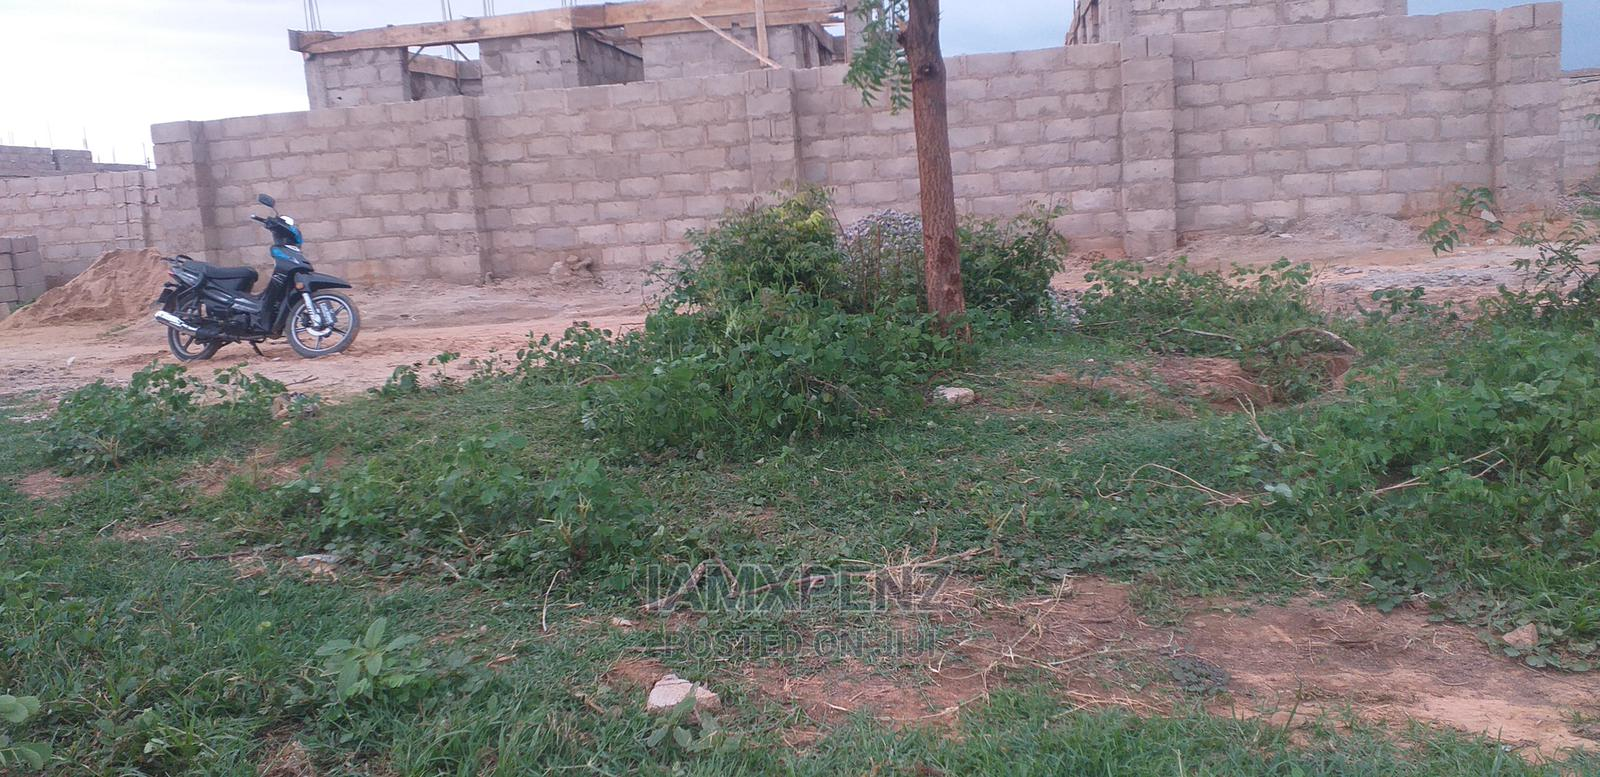 Empty Land for Rent   Land & Plots for Rent for sale in Ungogo, Kano State, Nigeria